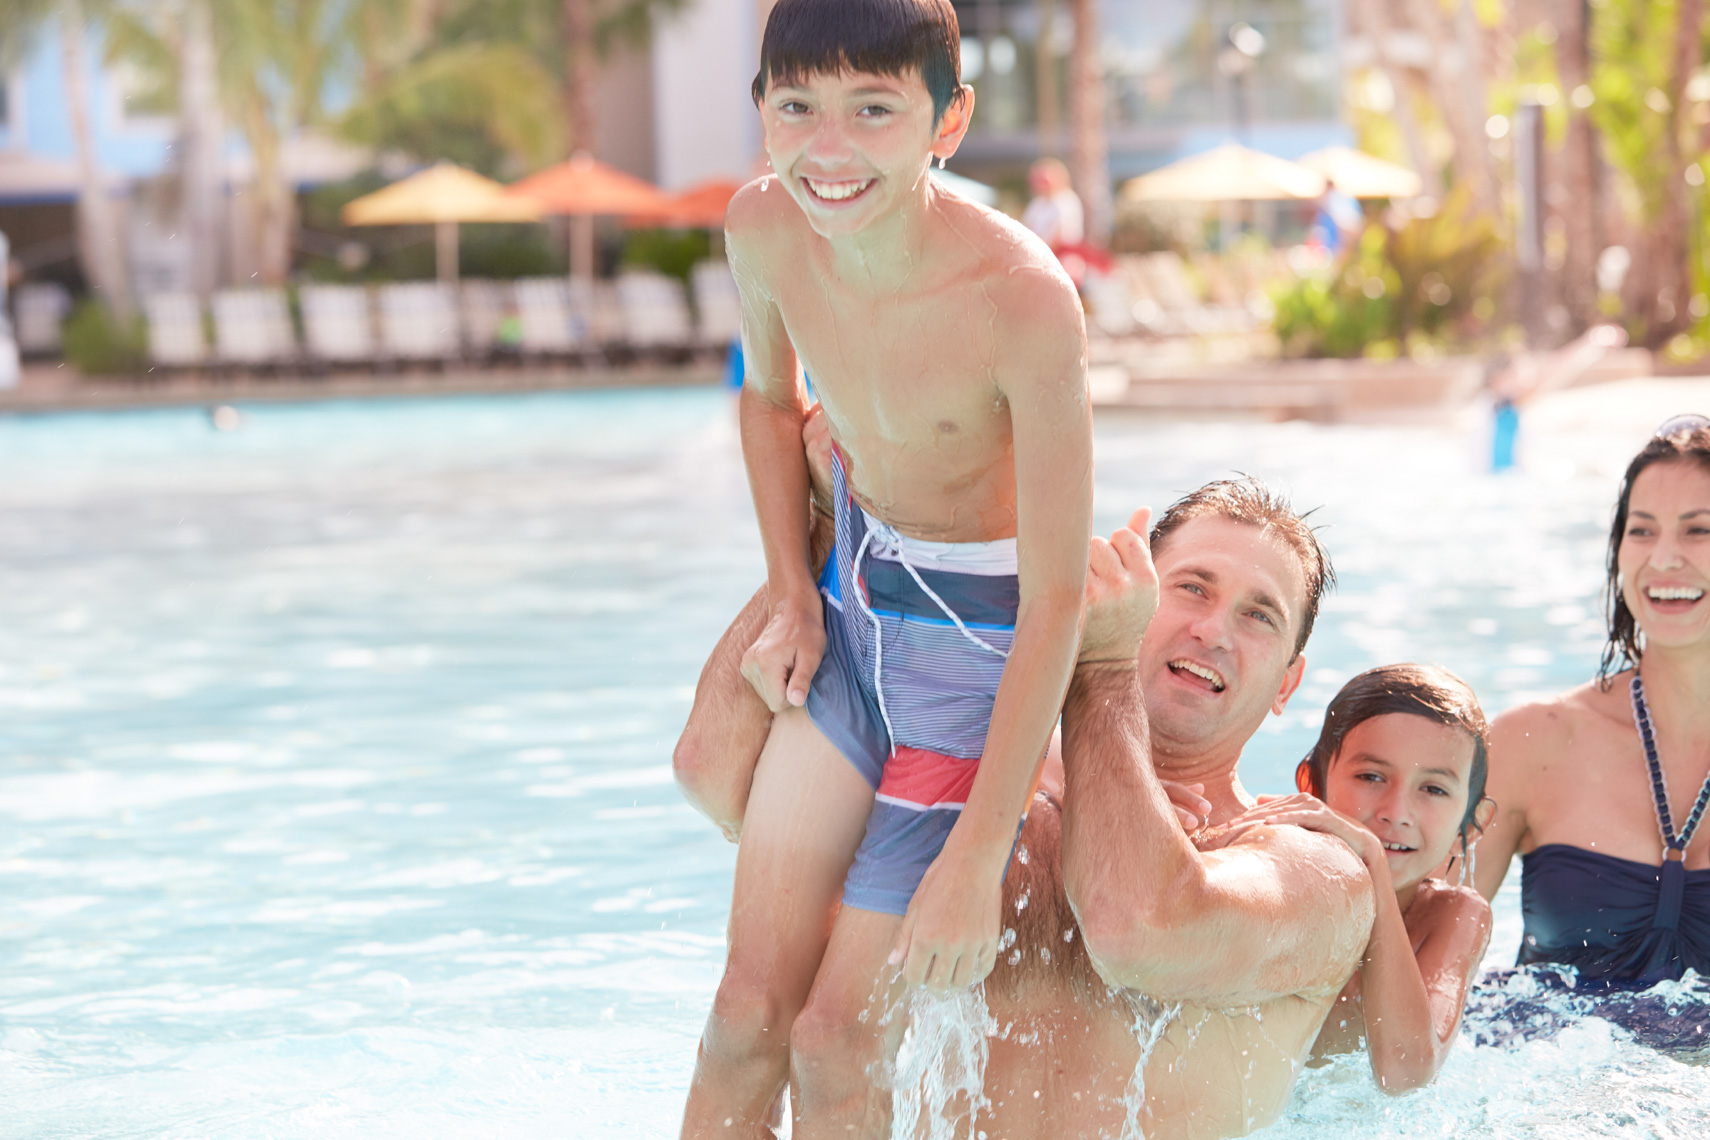 Dad playing with young boy in swimming pool with family near by on sunny day San Francisco lifestyle photographer